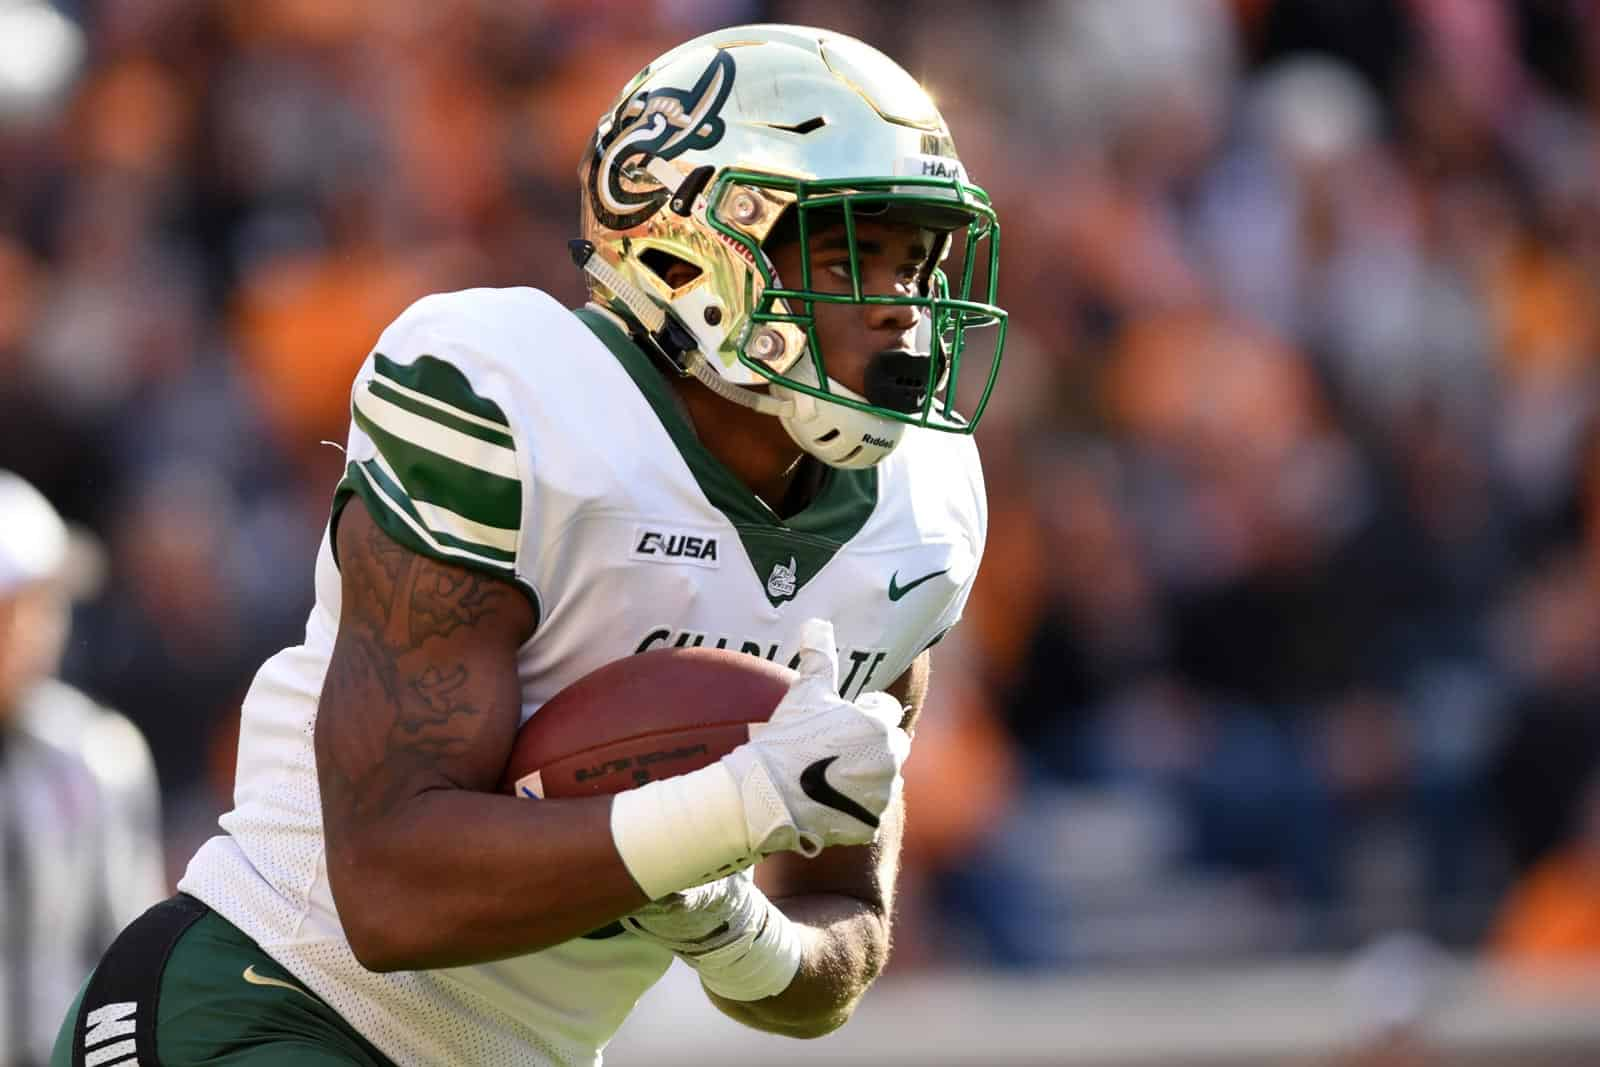 Charlotte Adds William Mary To 2022 Football Schedule